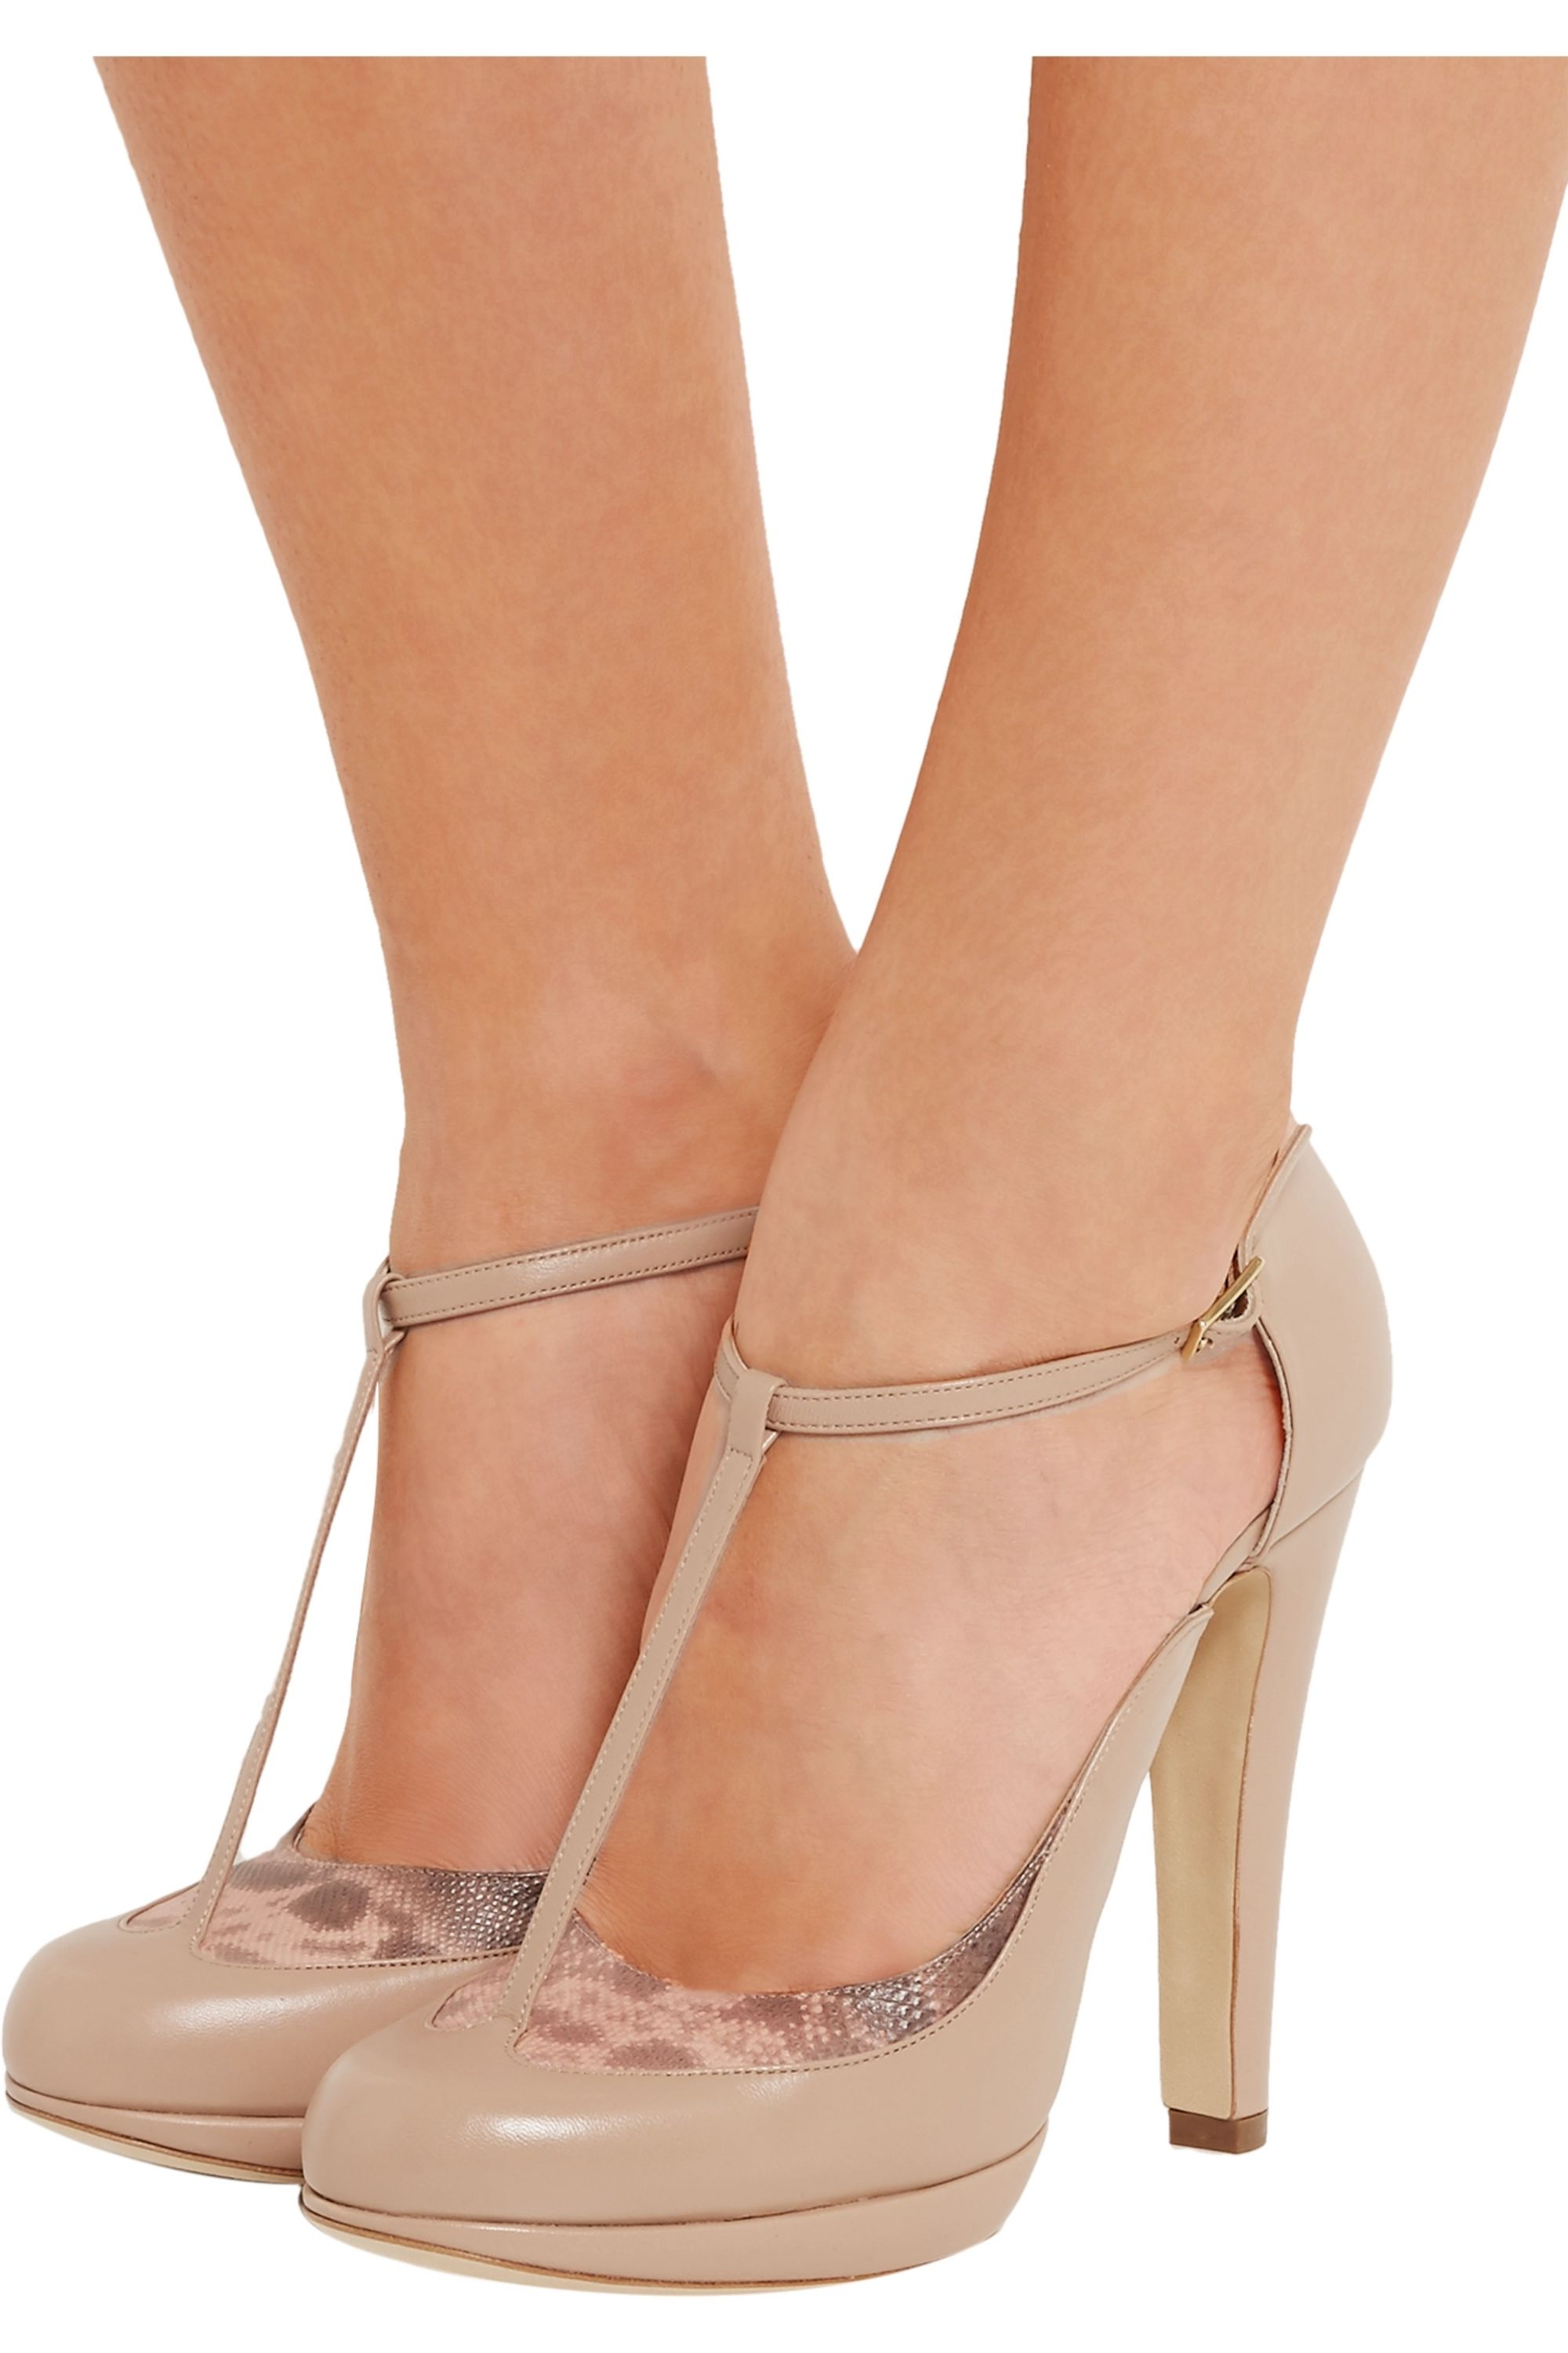 Malone Souliers Linda snake-trimmed leather Mary Jane pumps